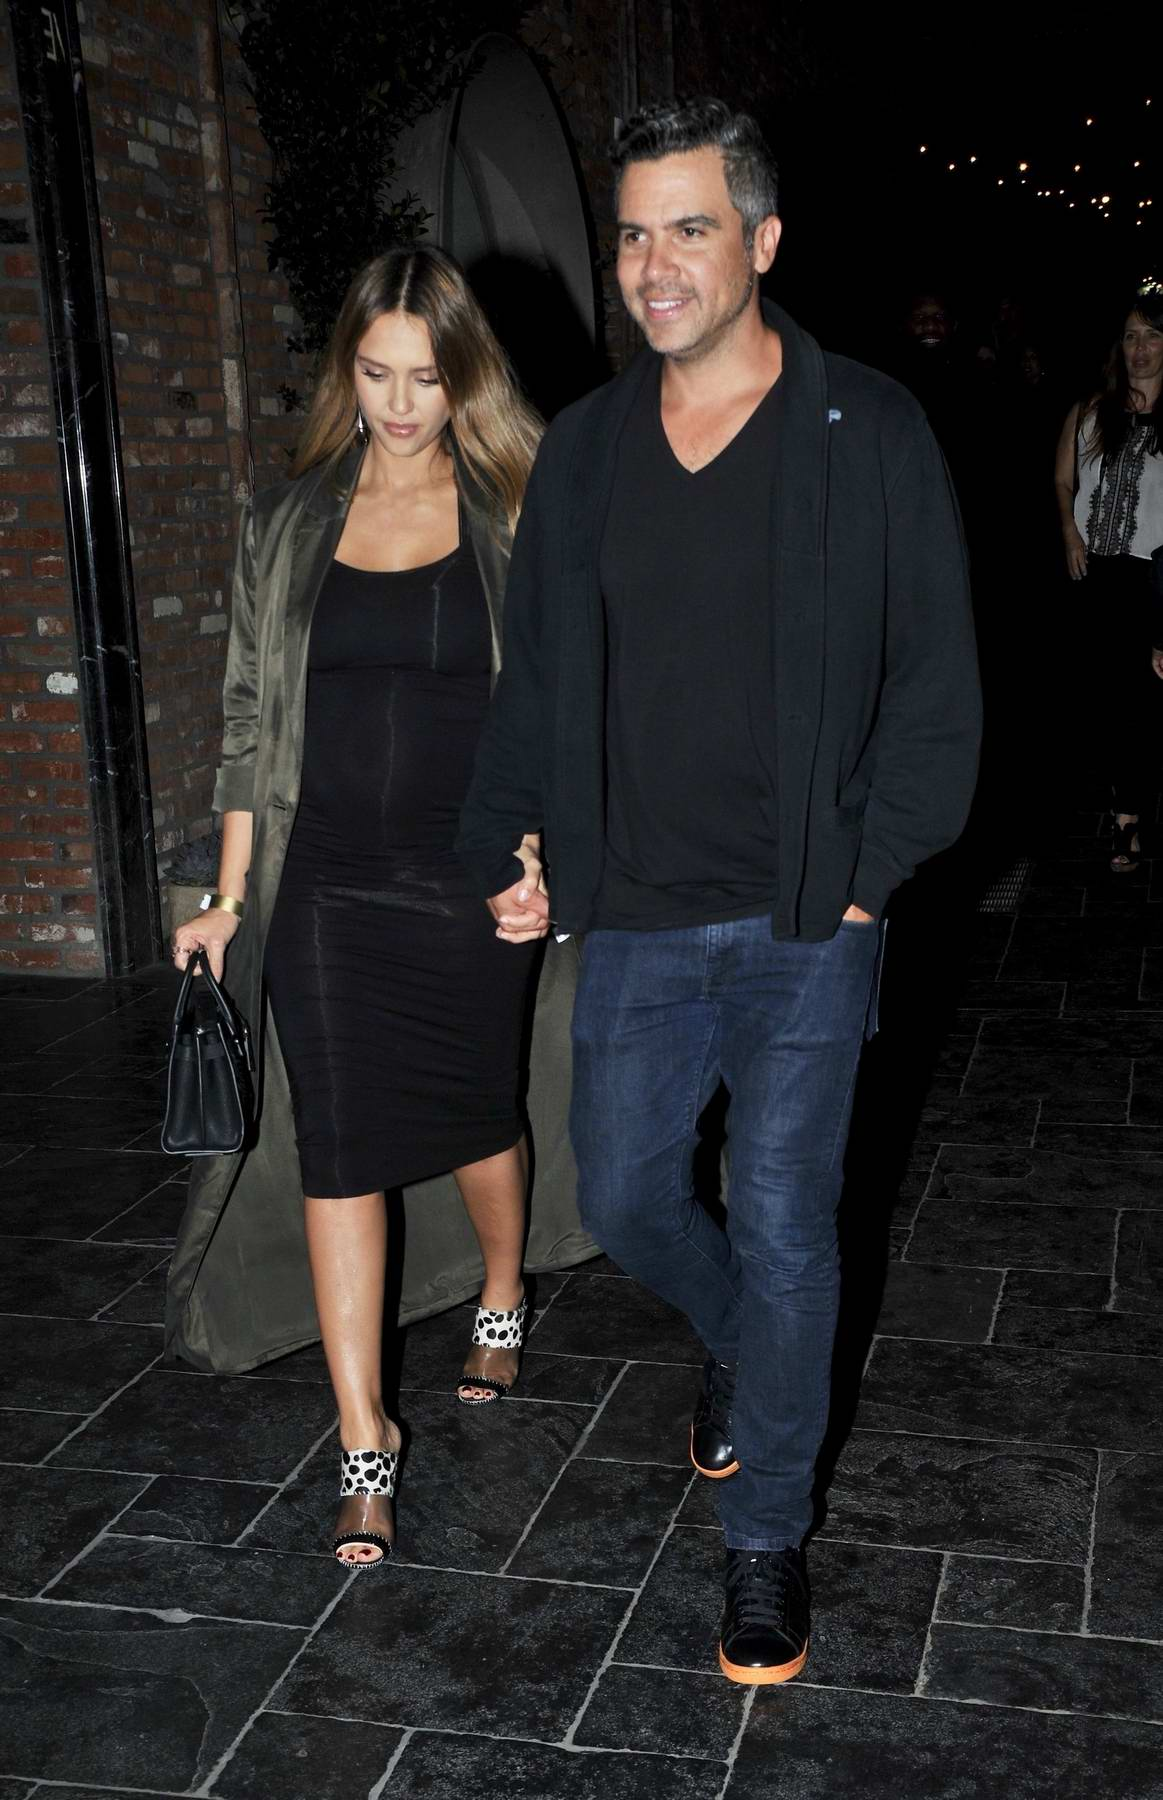 Jessica Alba out on a date night with husband Cash Warren in Hollywood, Los Angeles